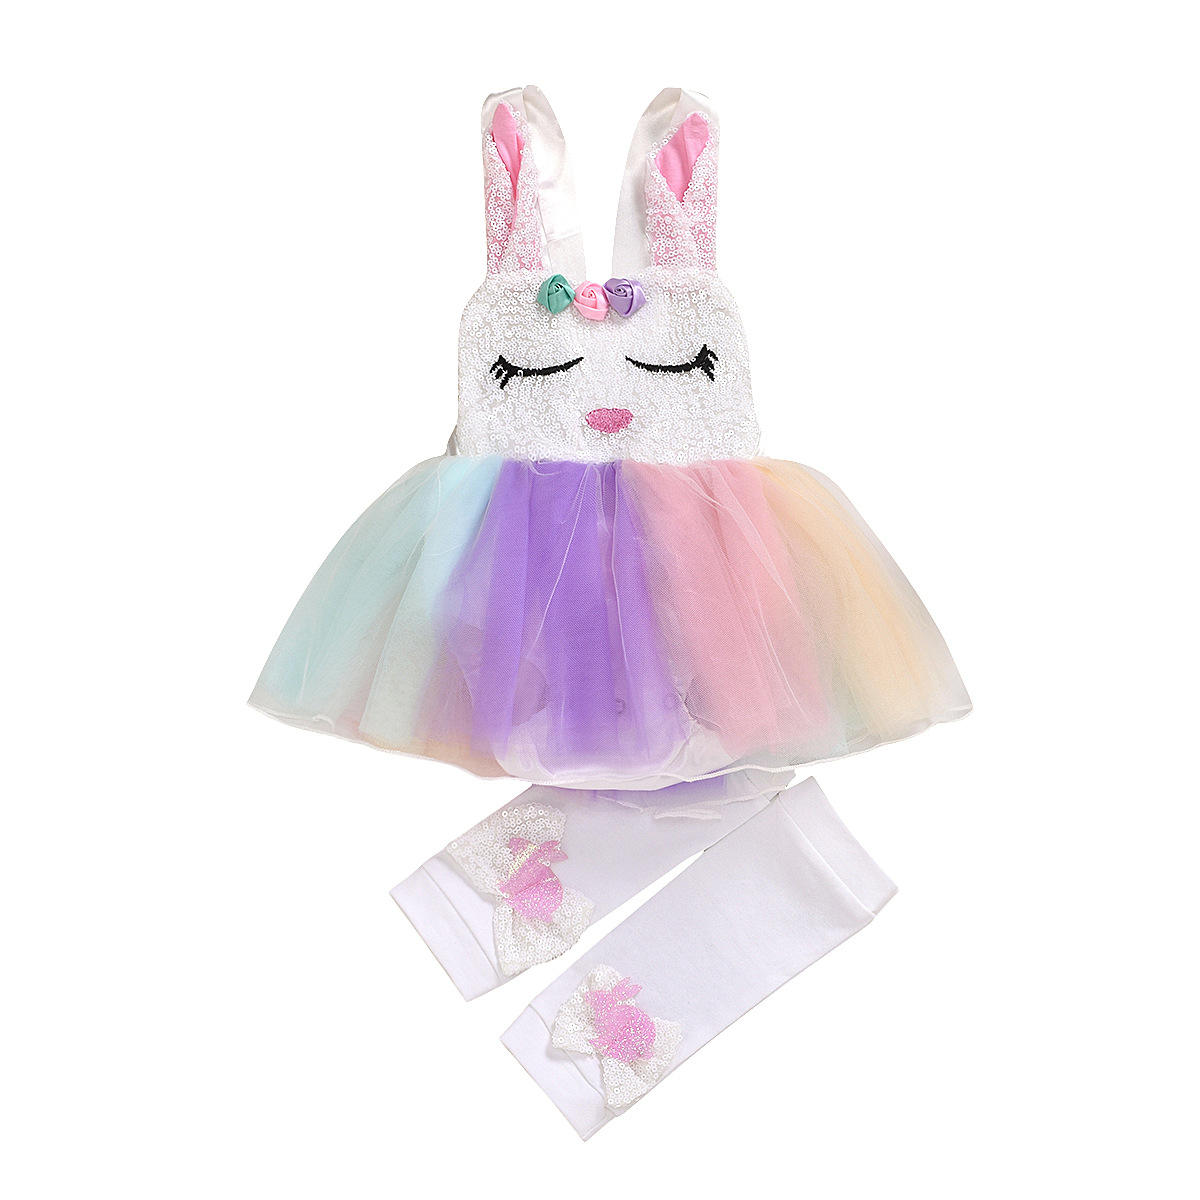 Easter Childrens Bunny Sequin Clothing Unicorn Style Young Tulle Layered Flower 1 Year Girl Baby Dresses